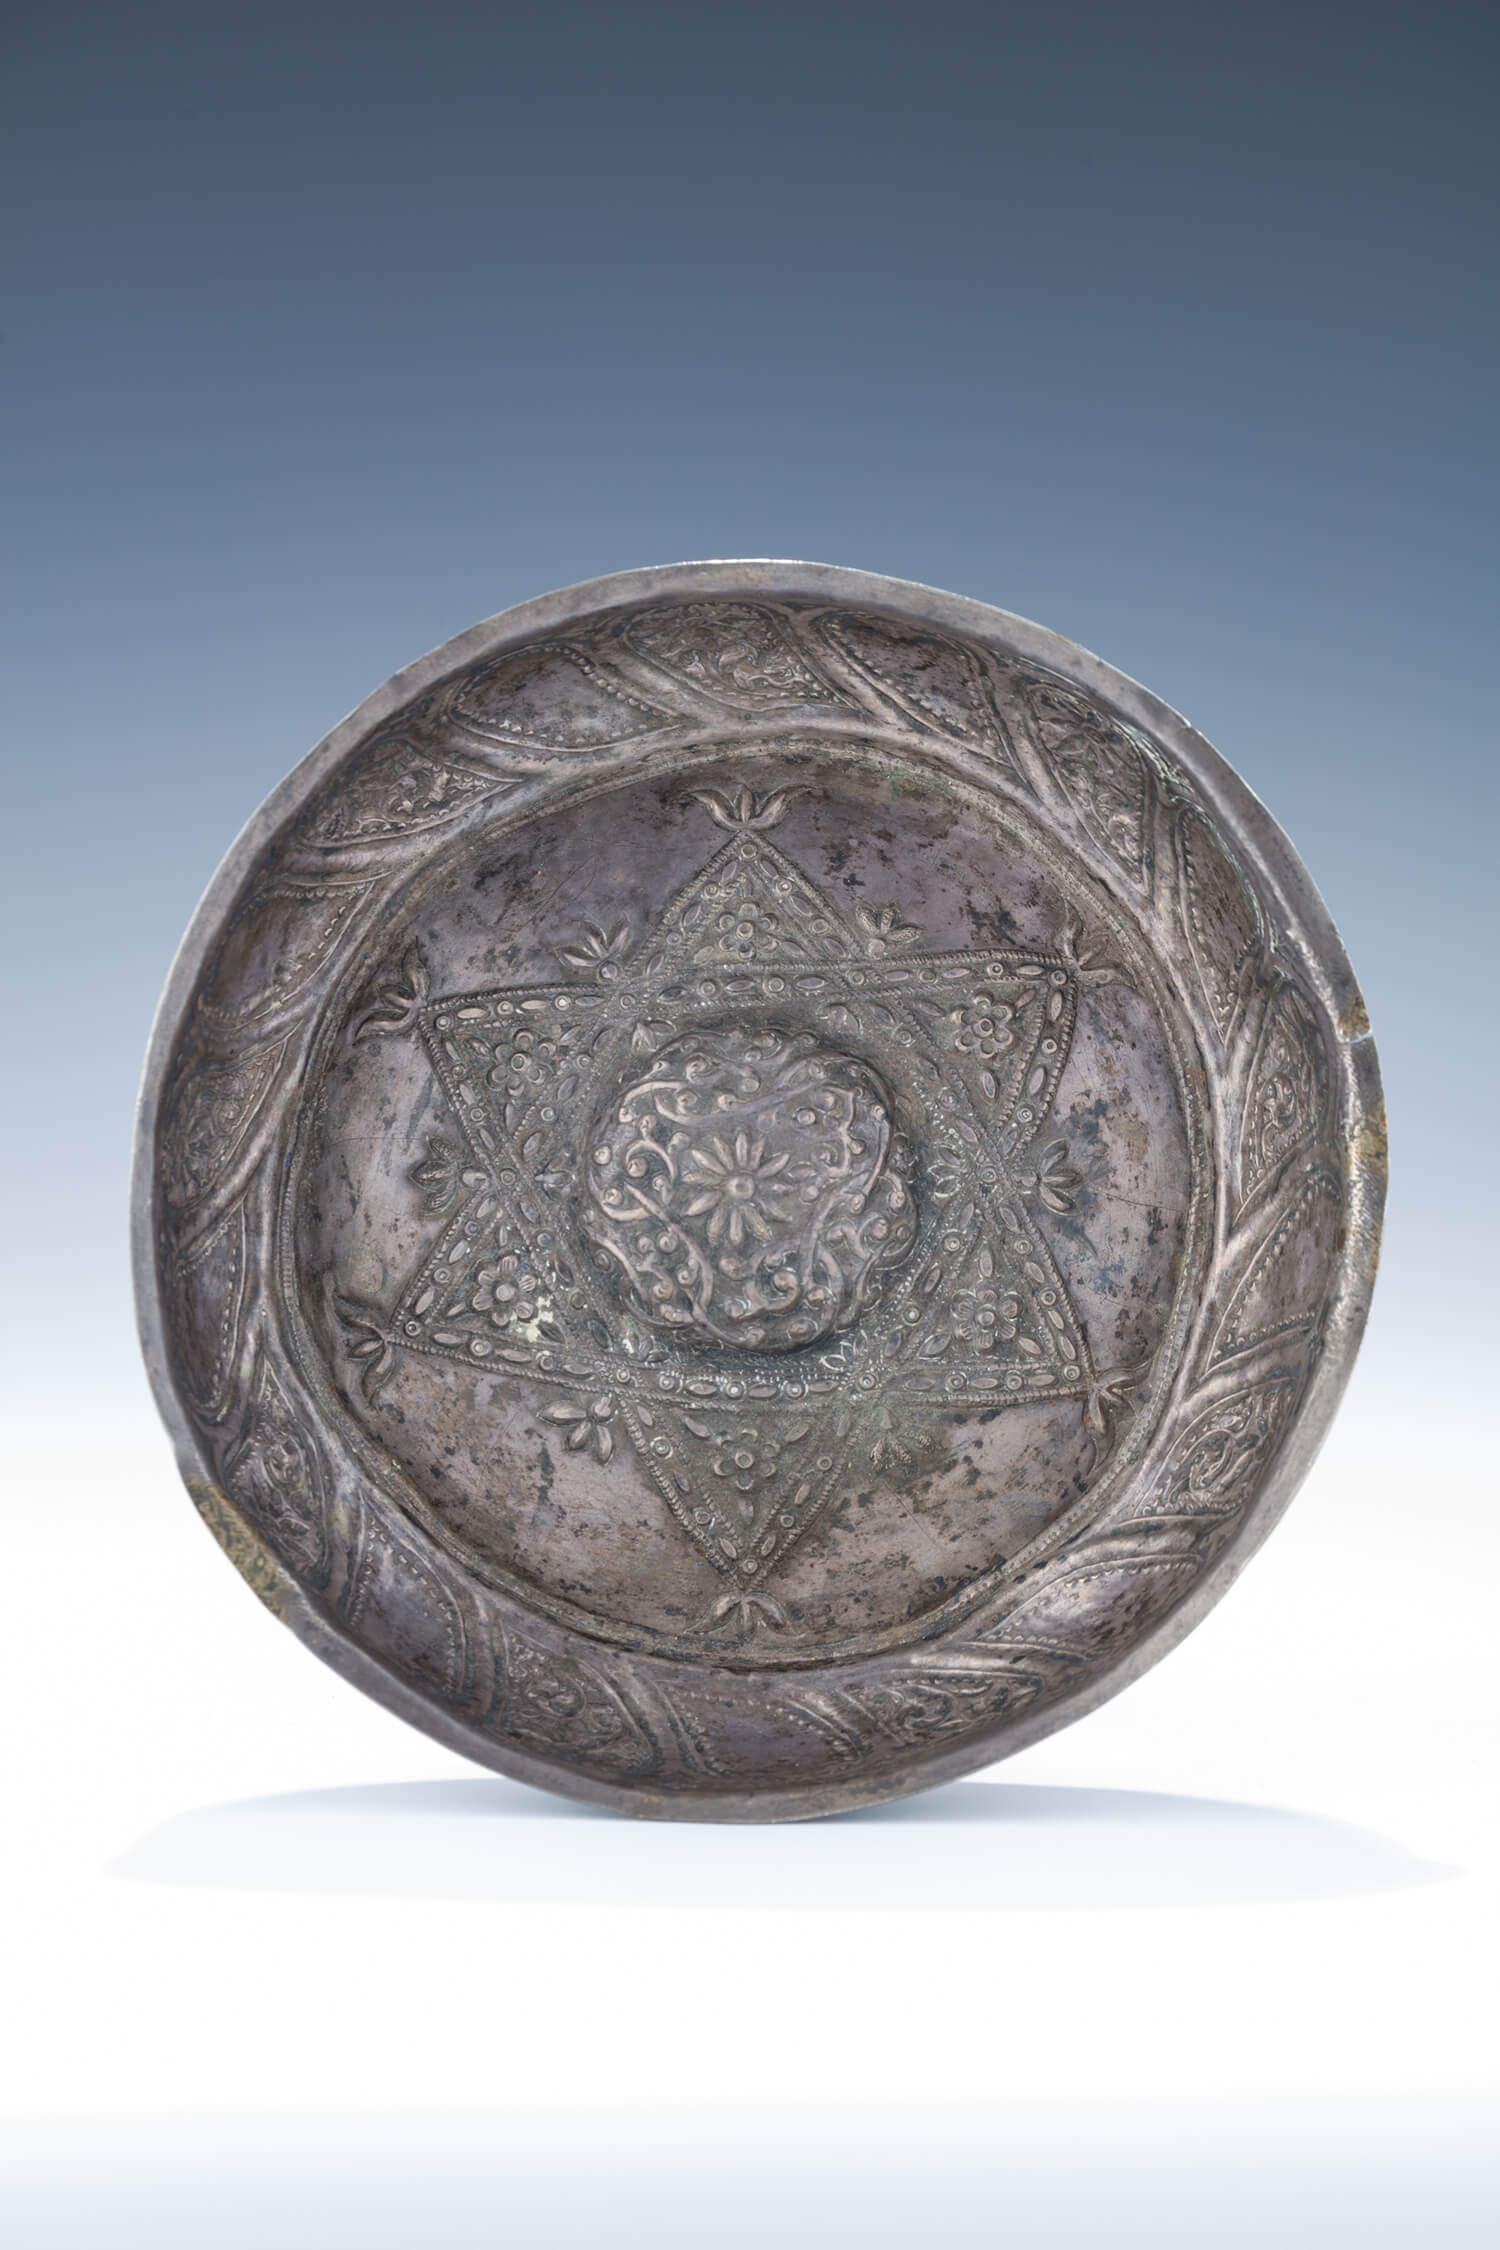 006. A LARGE SILVER CEREMONIAL BOWL